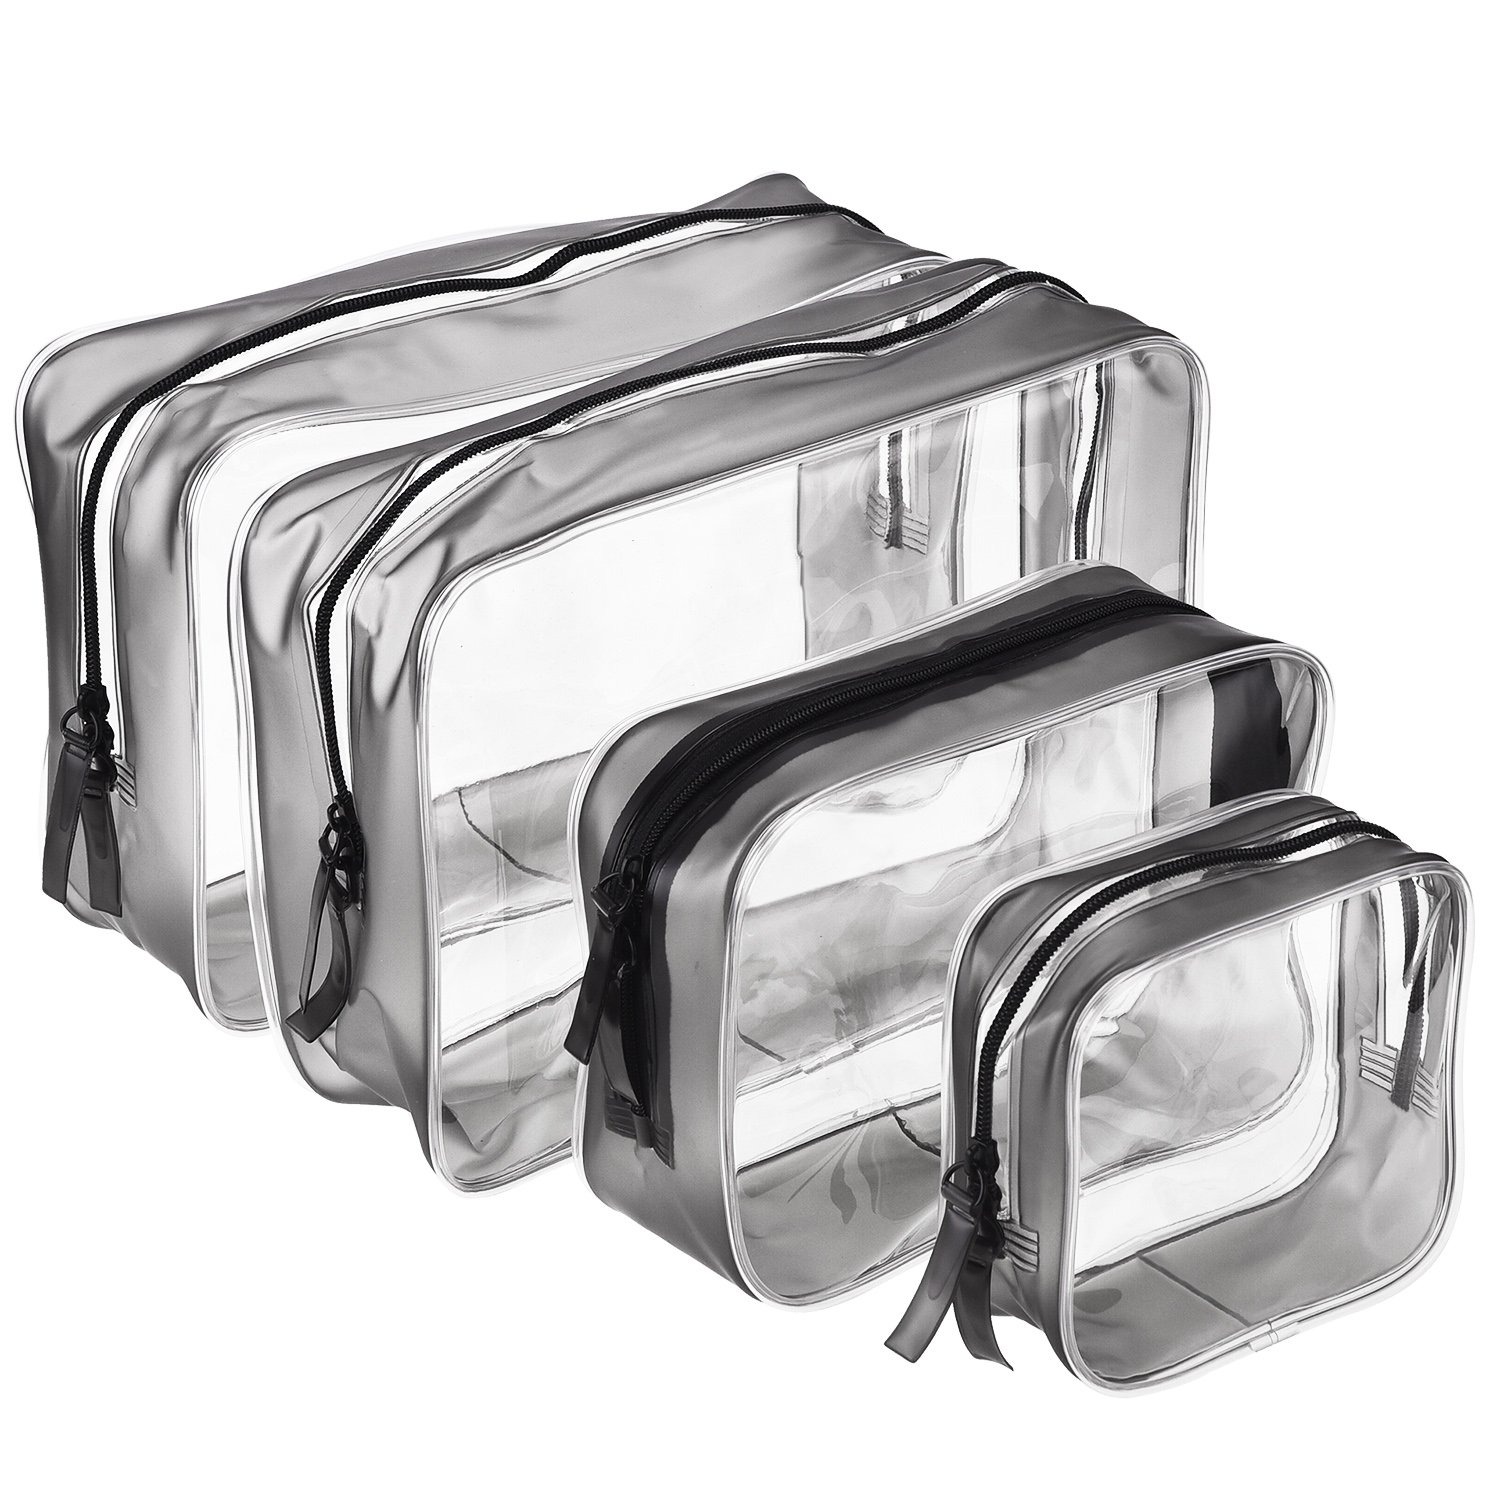 4 Pieces Clear PVC Zippered Toiletry Carry Pouch Waterproof Cosmetic Makeup Bag Toiletry Organizer Case, Multi-Sizes (Small, Medium, Large)